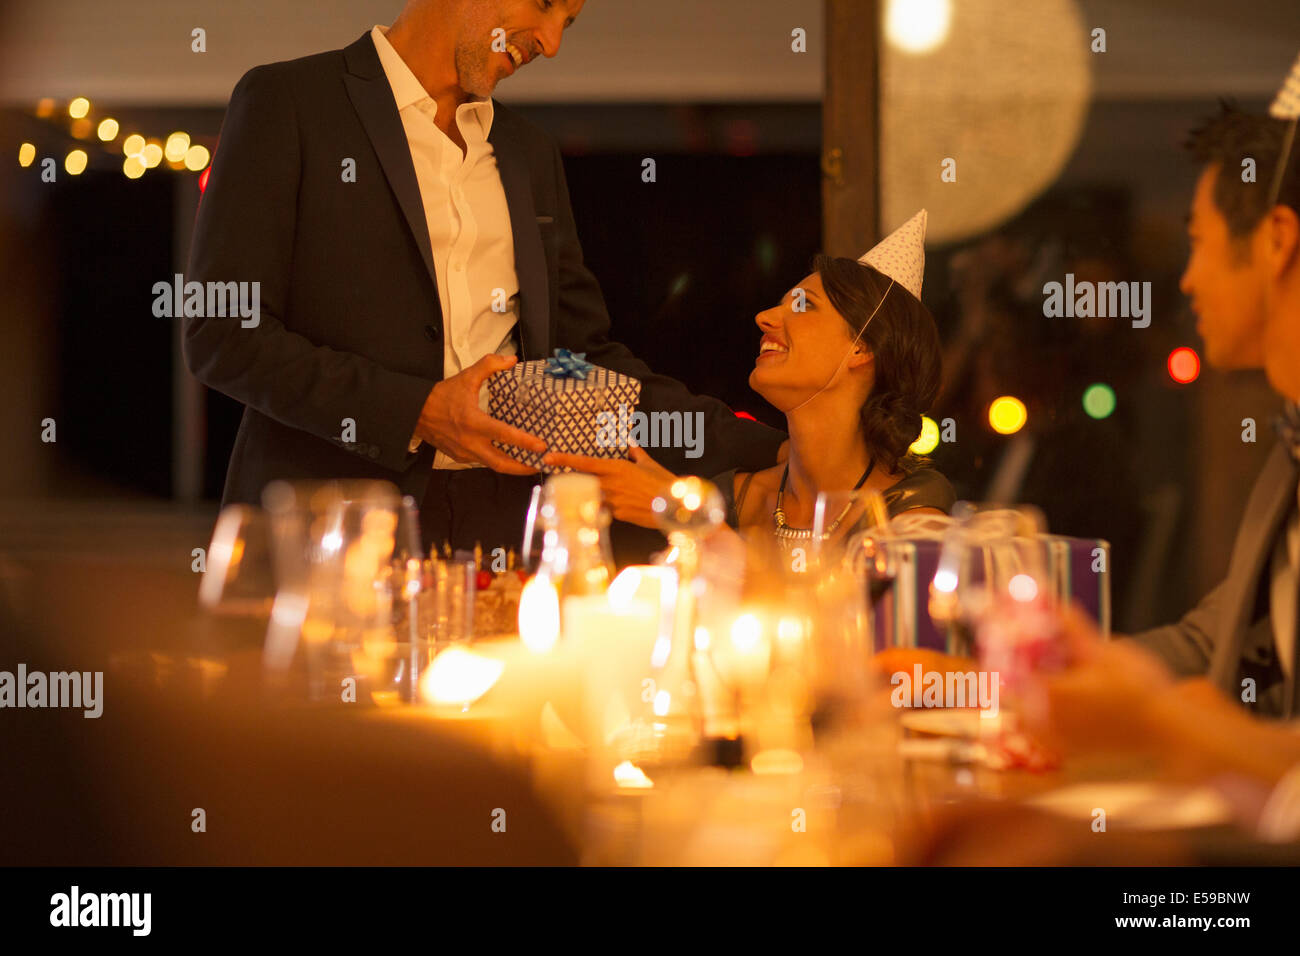 Man giving wife gift at birthday party - Stock Image